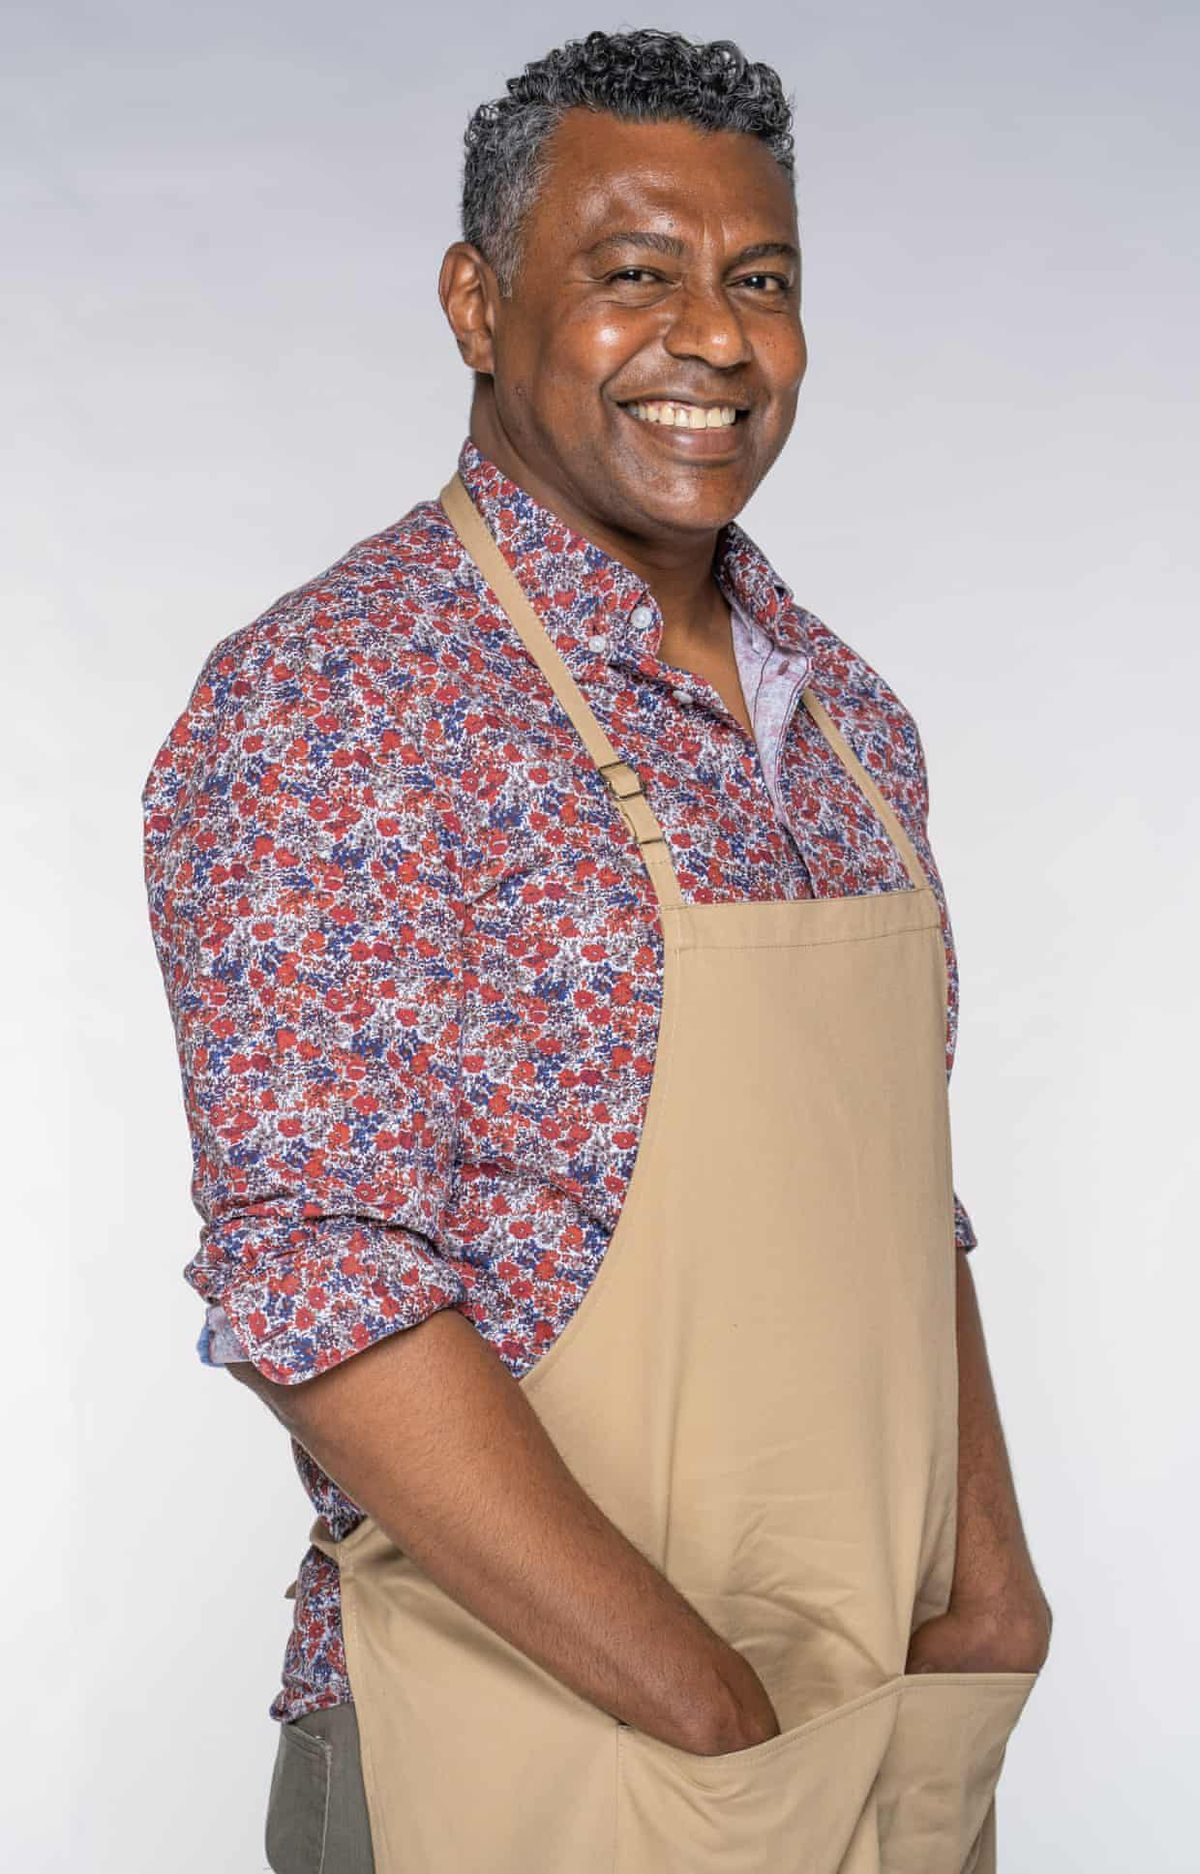 Great British Bake Off 2021 contestant Jairzeno, who will compete on GBBO this year